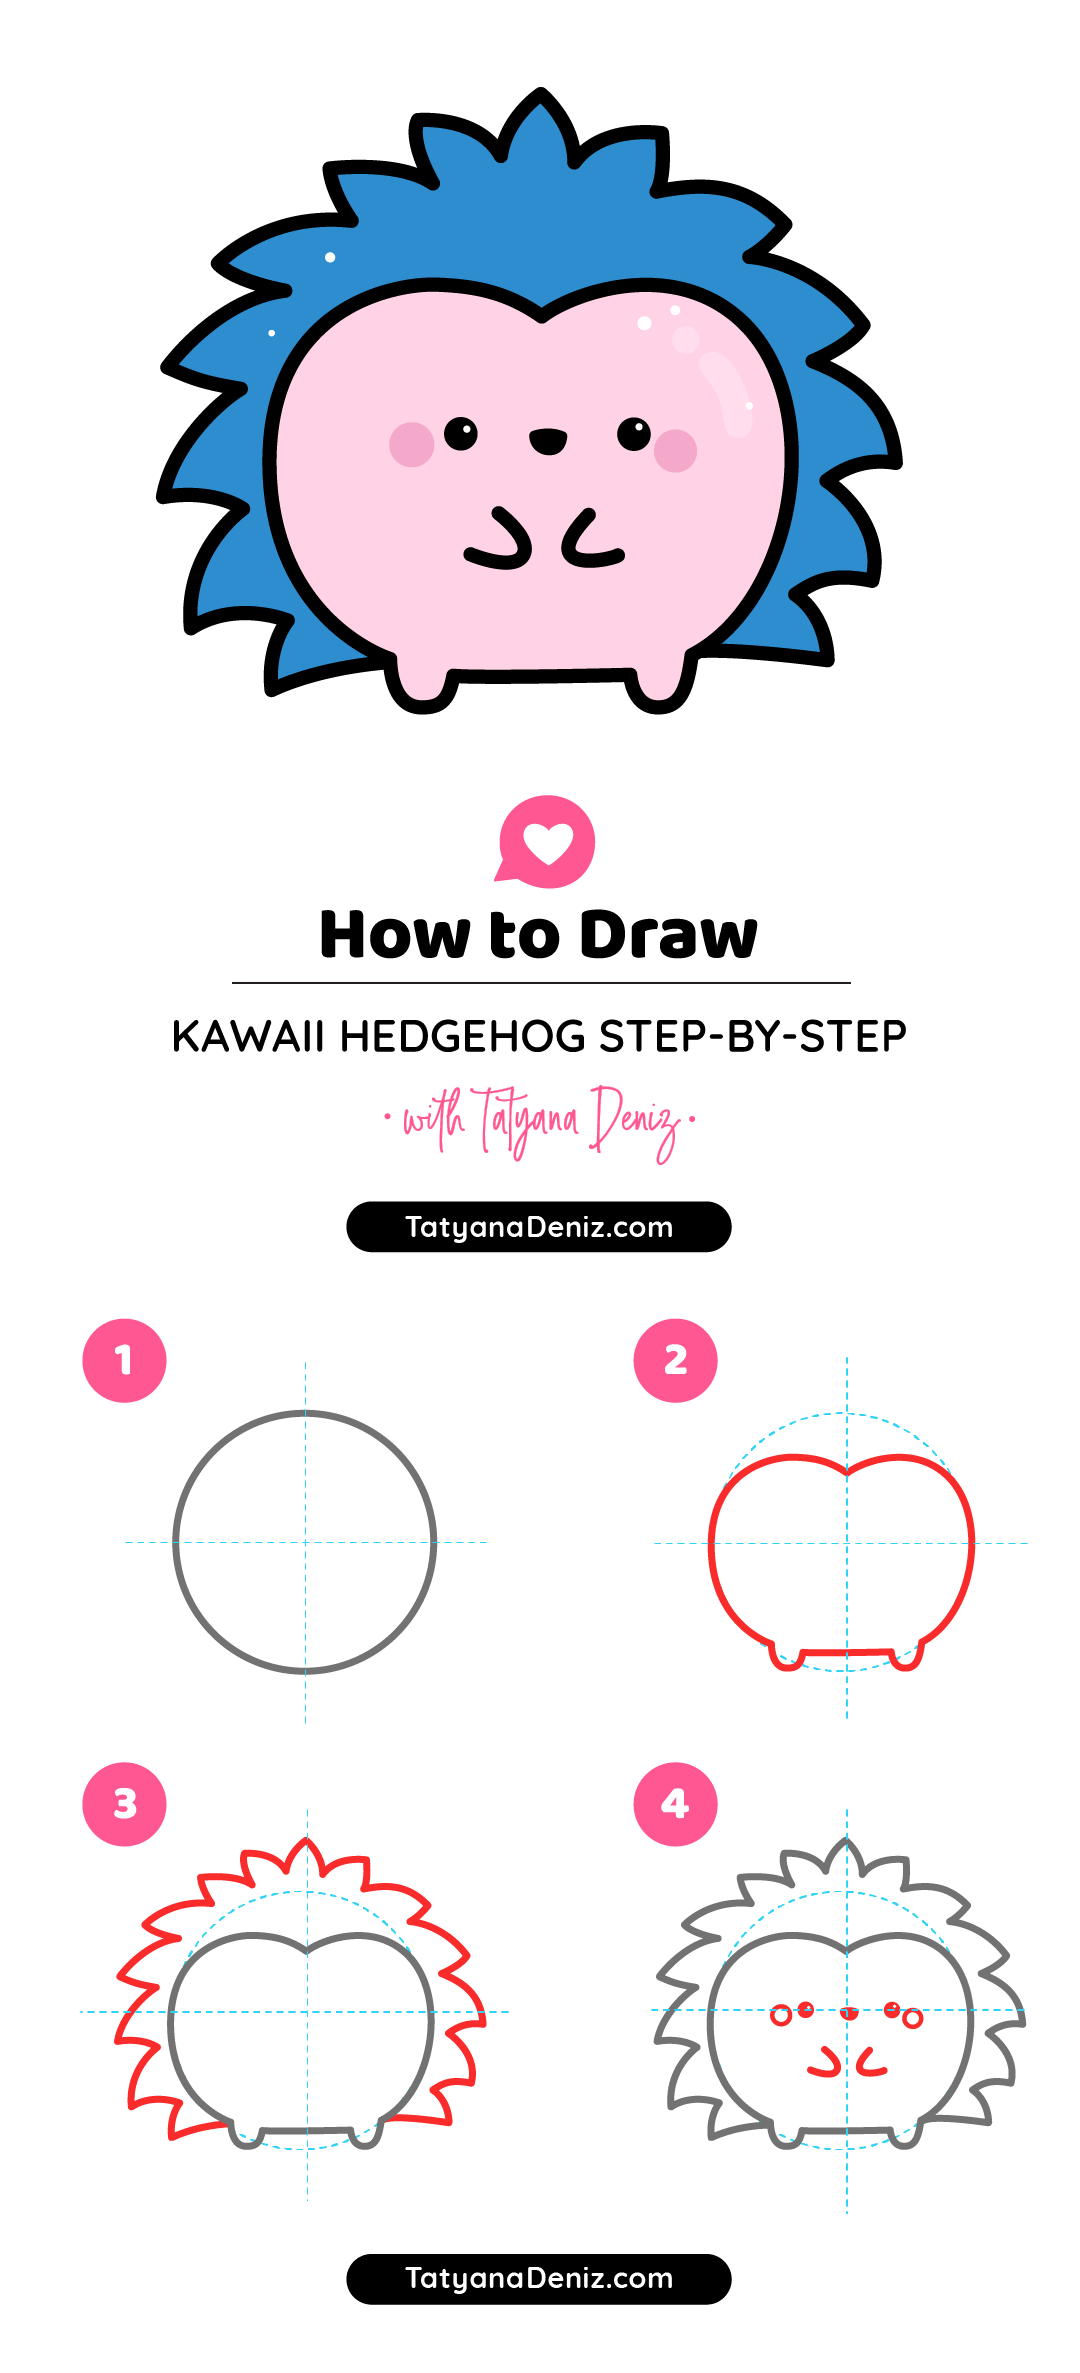 How to draw kawaii hedgehog with an easy step-by-step tutorial